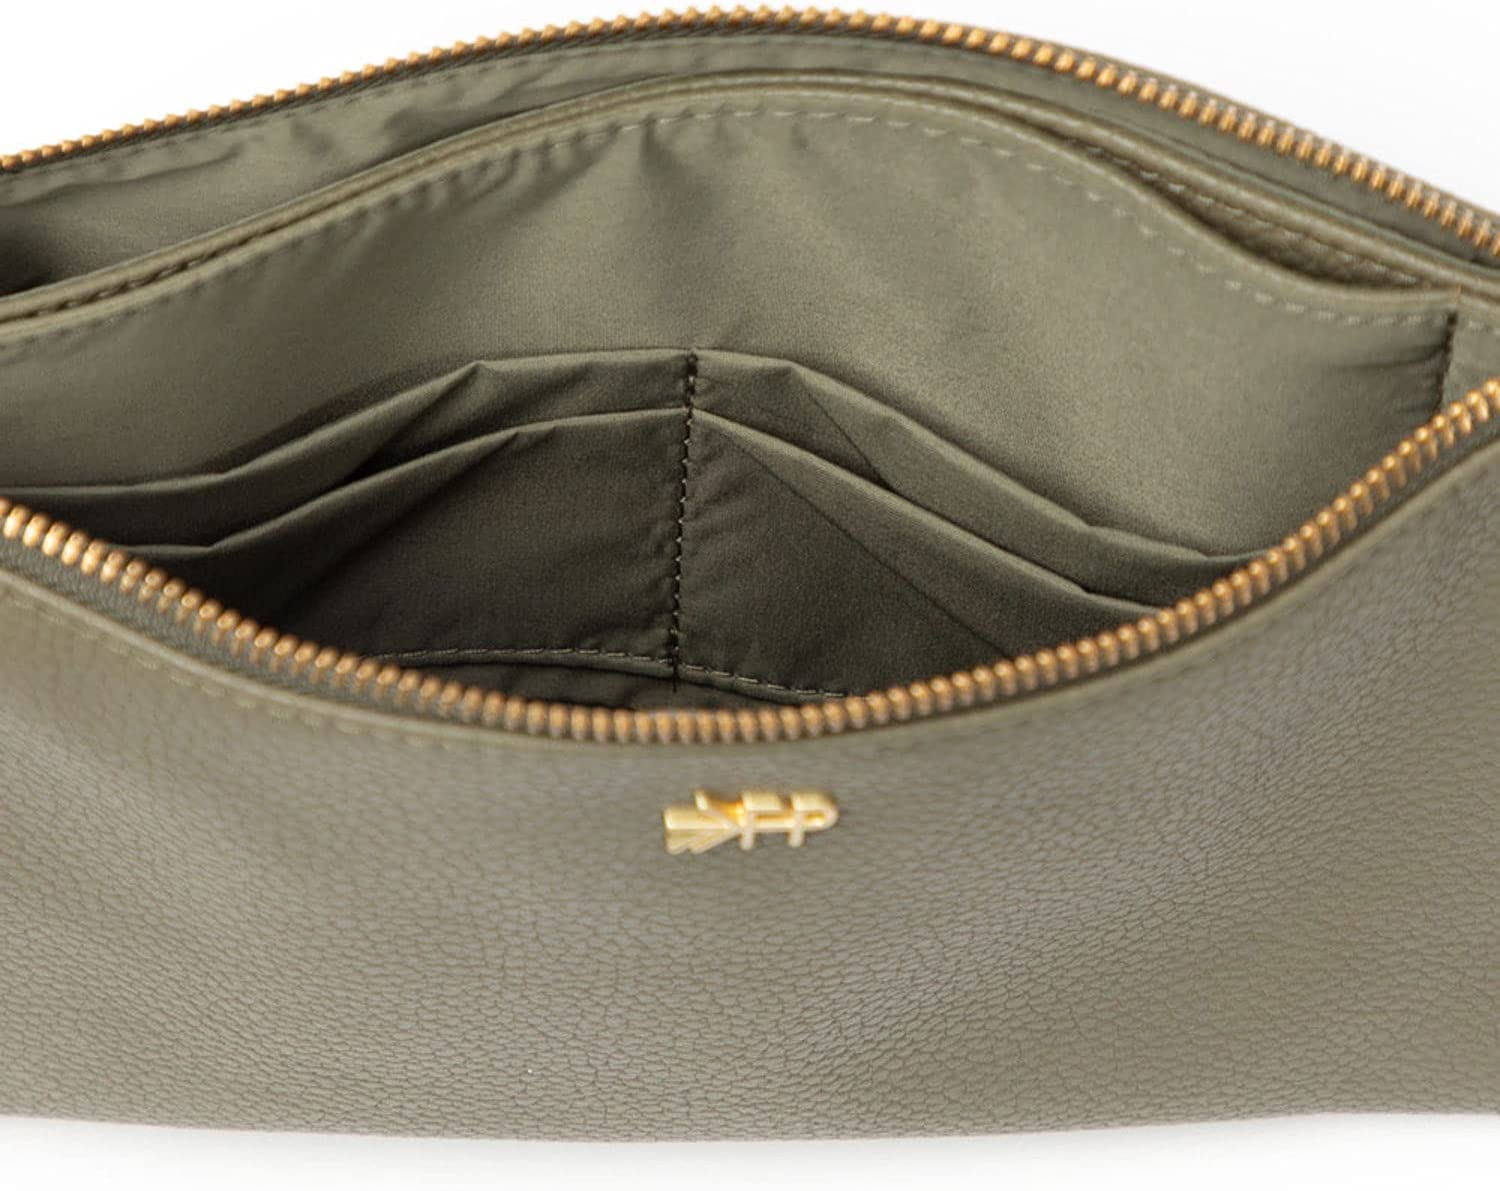 Freshly Picked - Classic Zip Pouch Diaper Bag Backpack - Large Internal Storage 10 Pockets Wipeable Vegan Leather - Sage Green